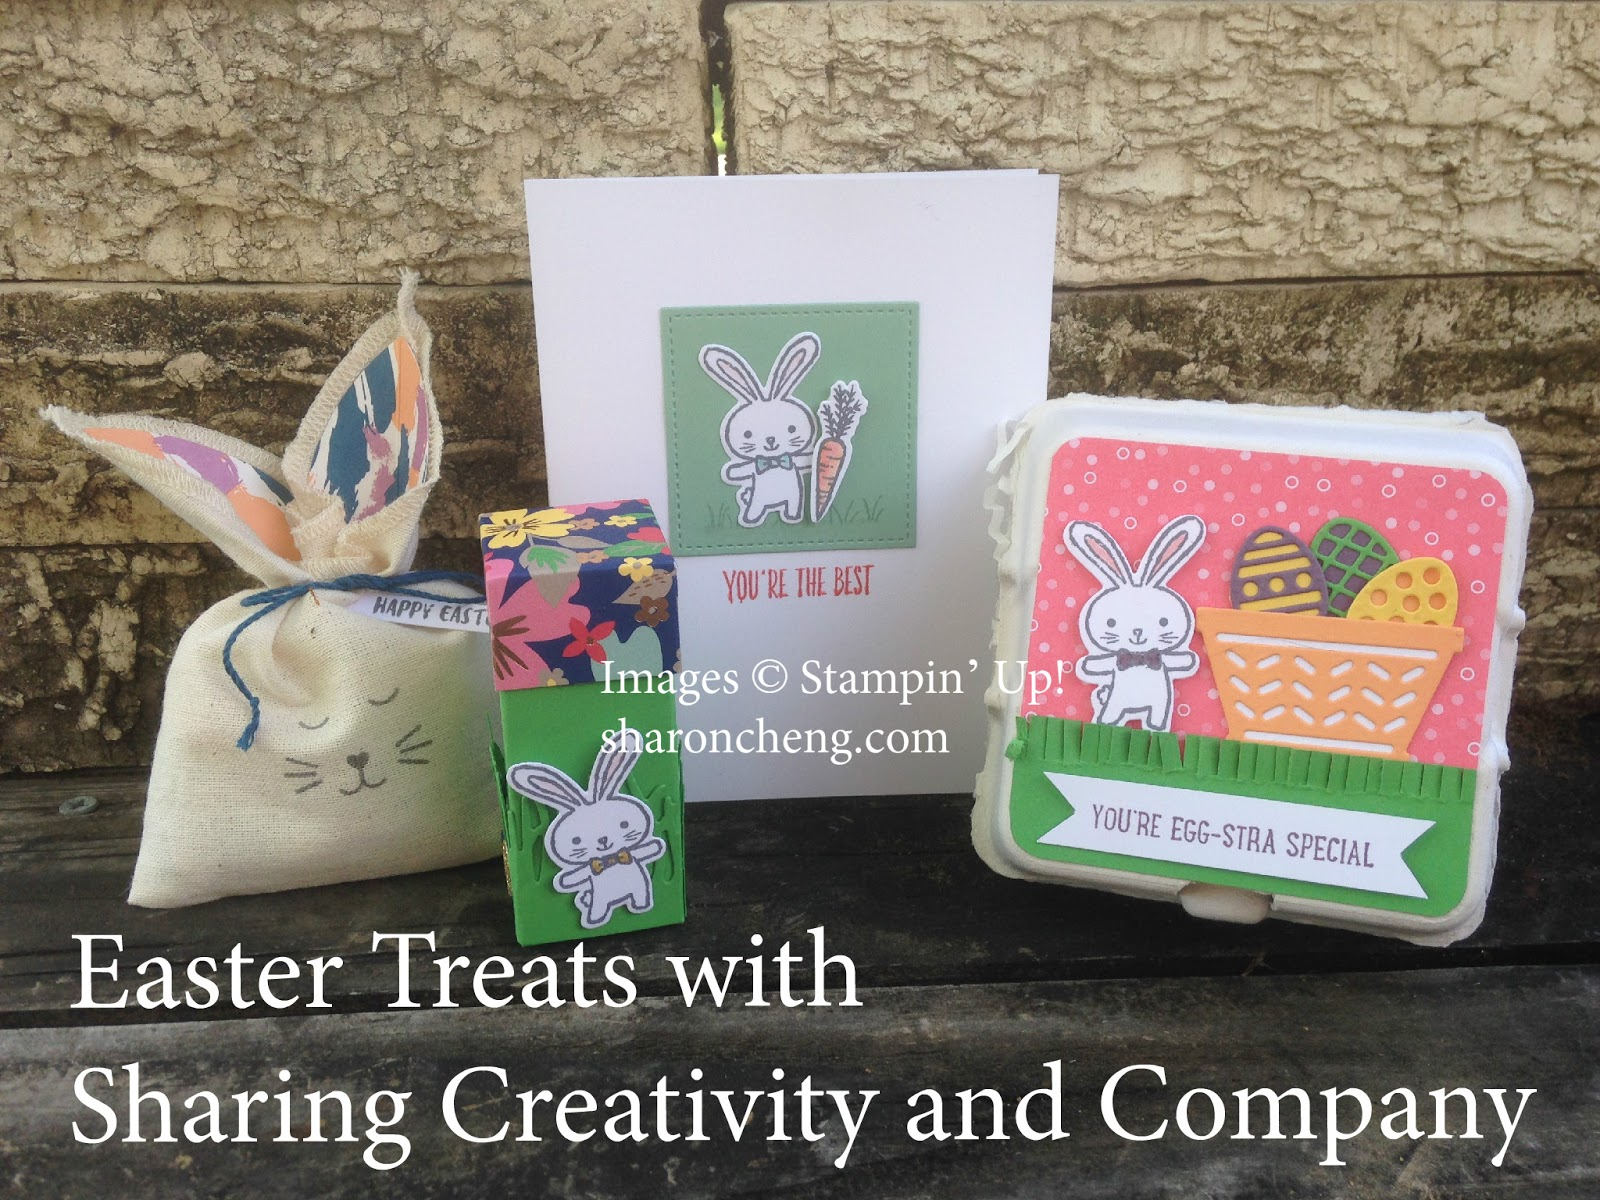 Here are some Easter treats using Stampinu0027